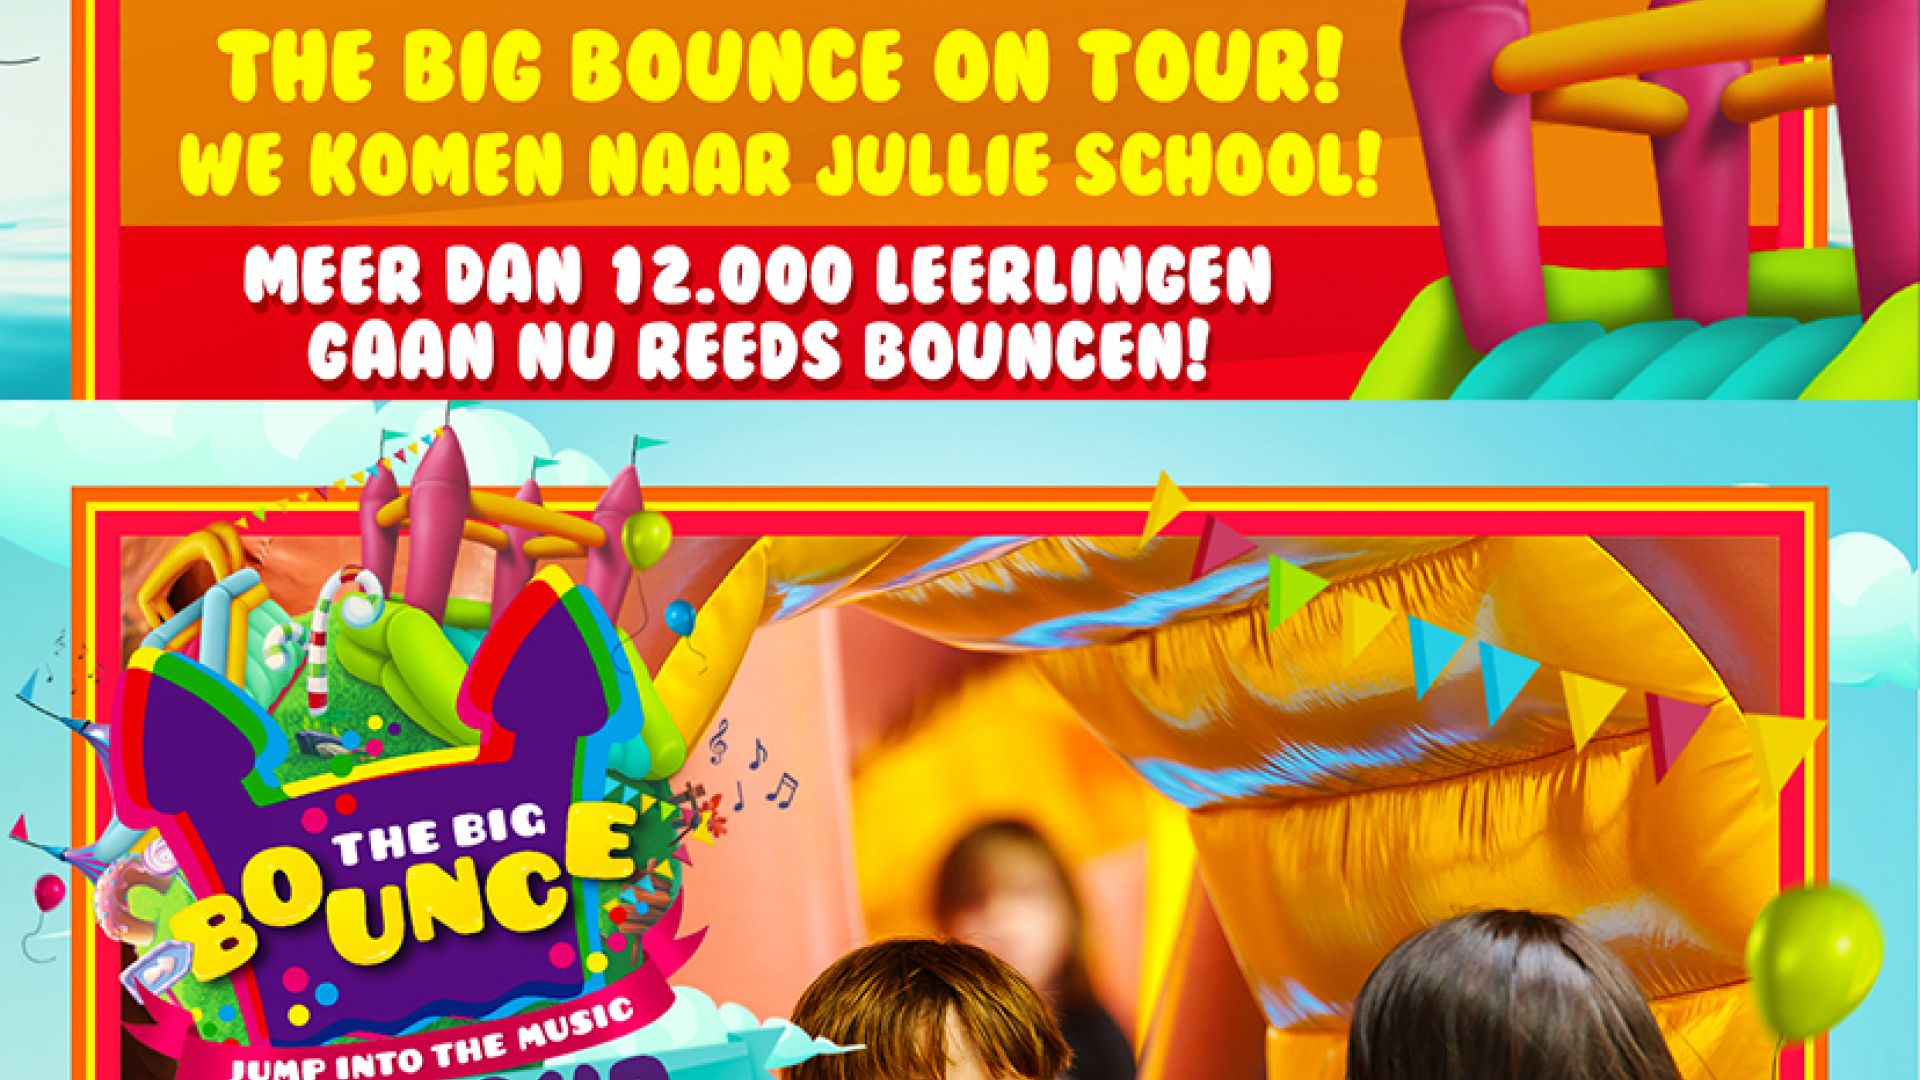 LET'S BOUNCE!!!!